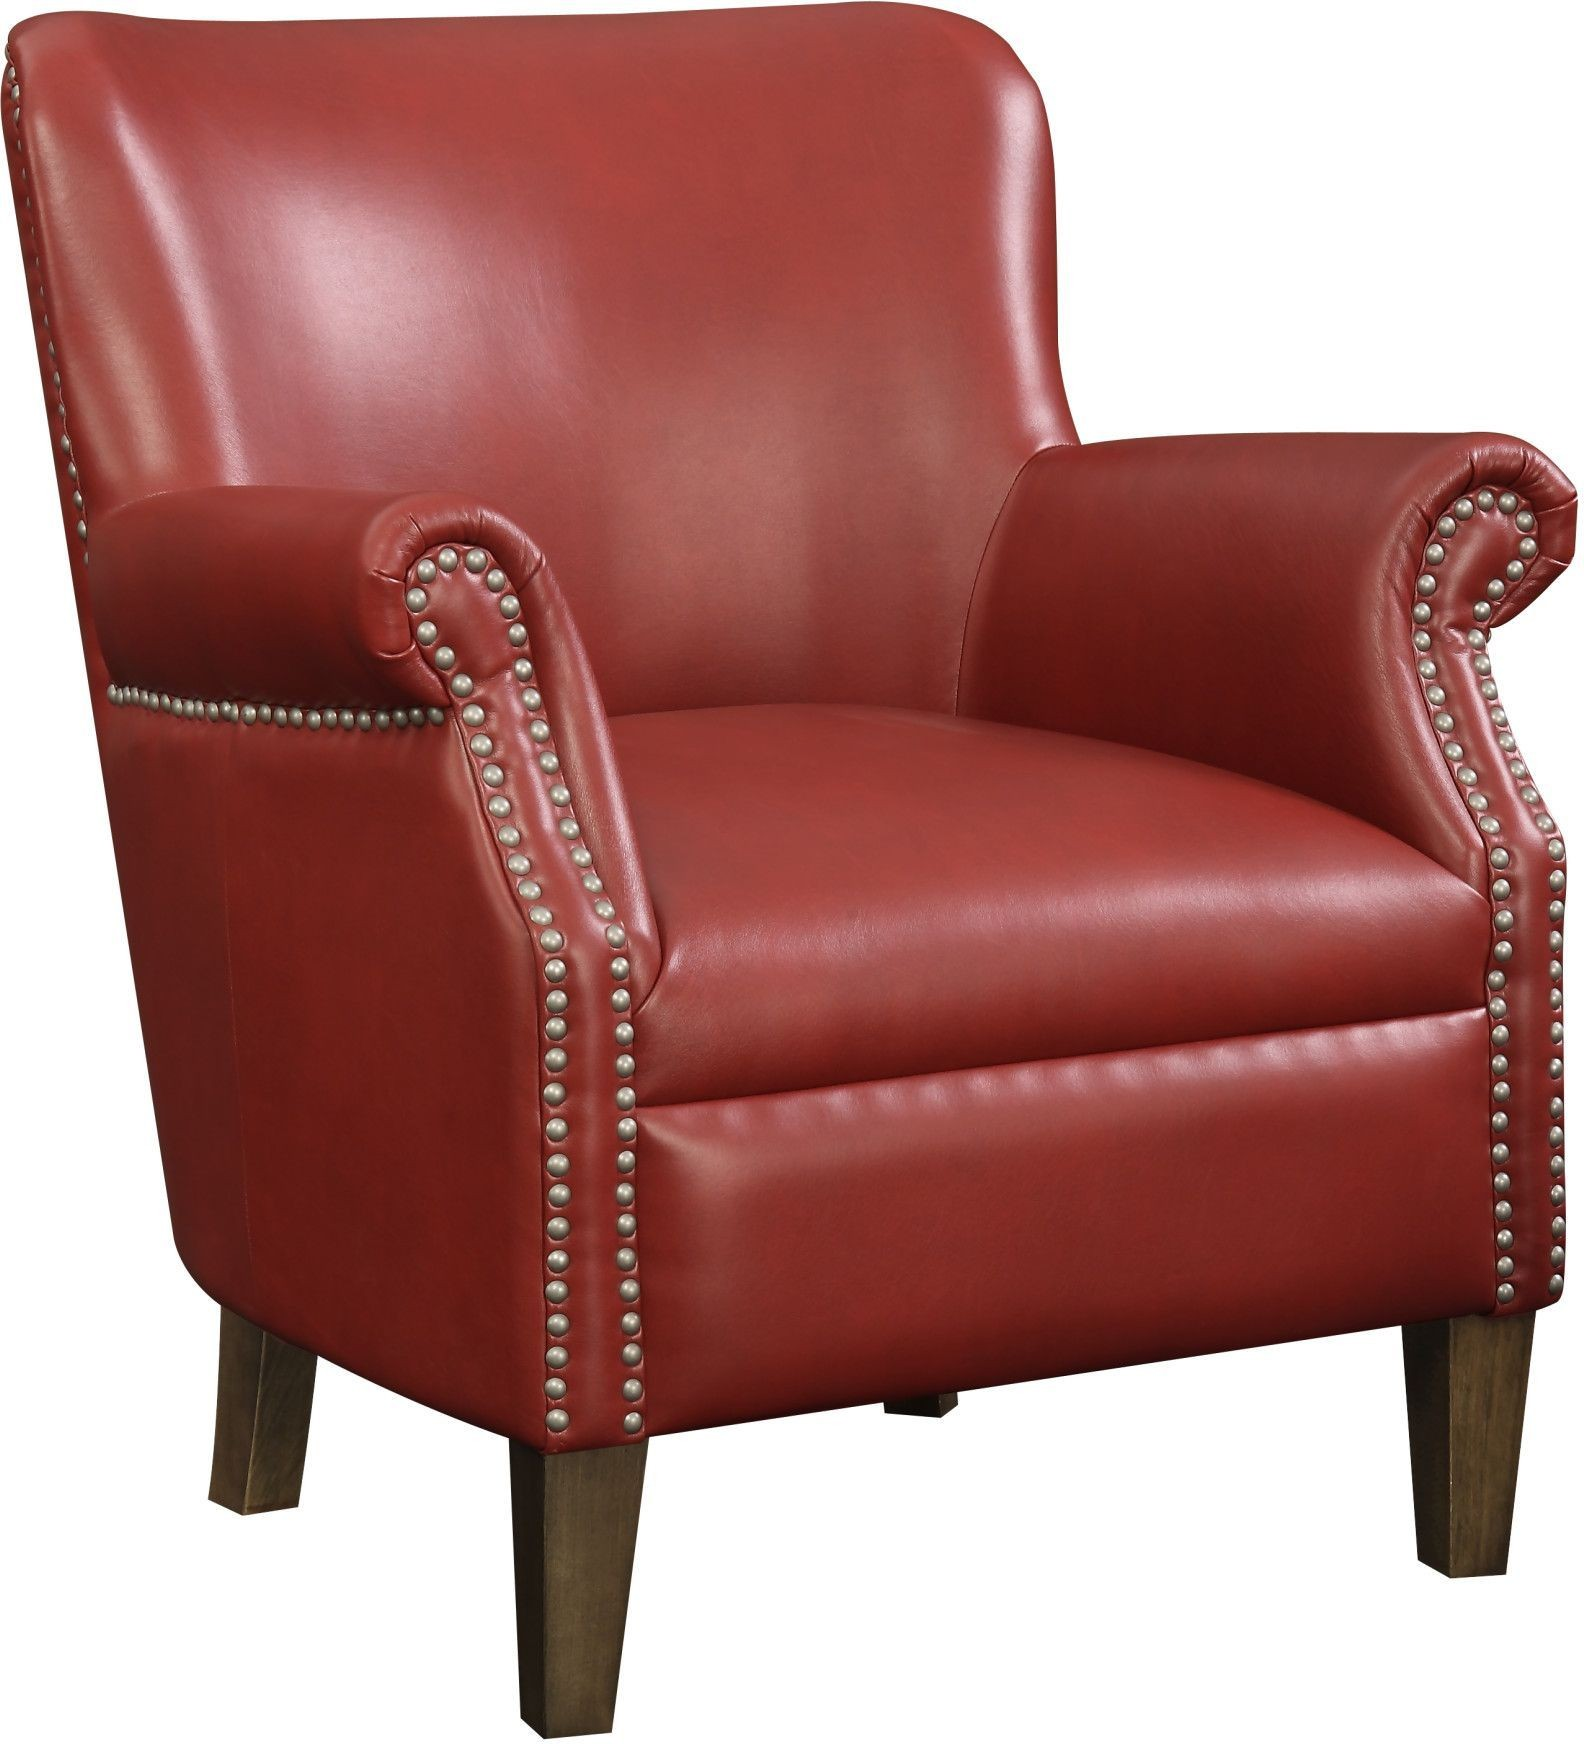 Red And White Accent Chair Oscar Red Accent Chair From Emerald Home Coleman Furniture